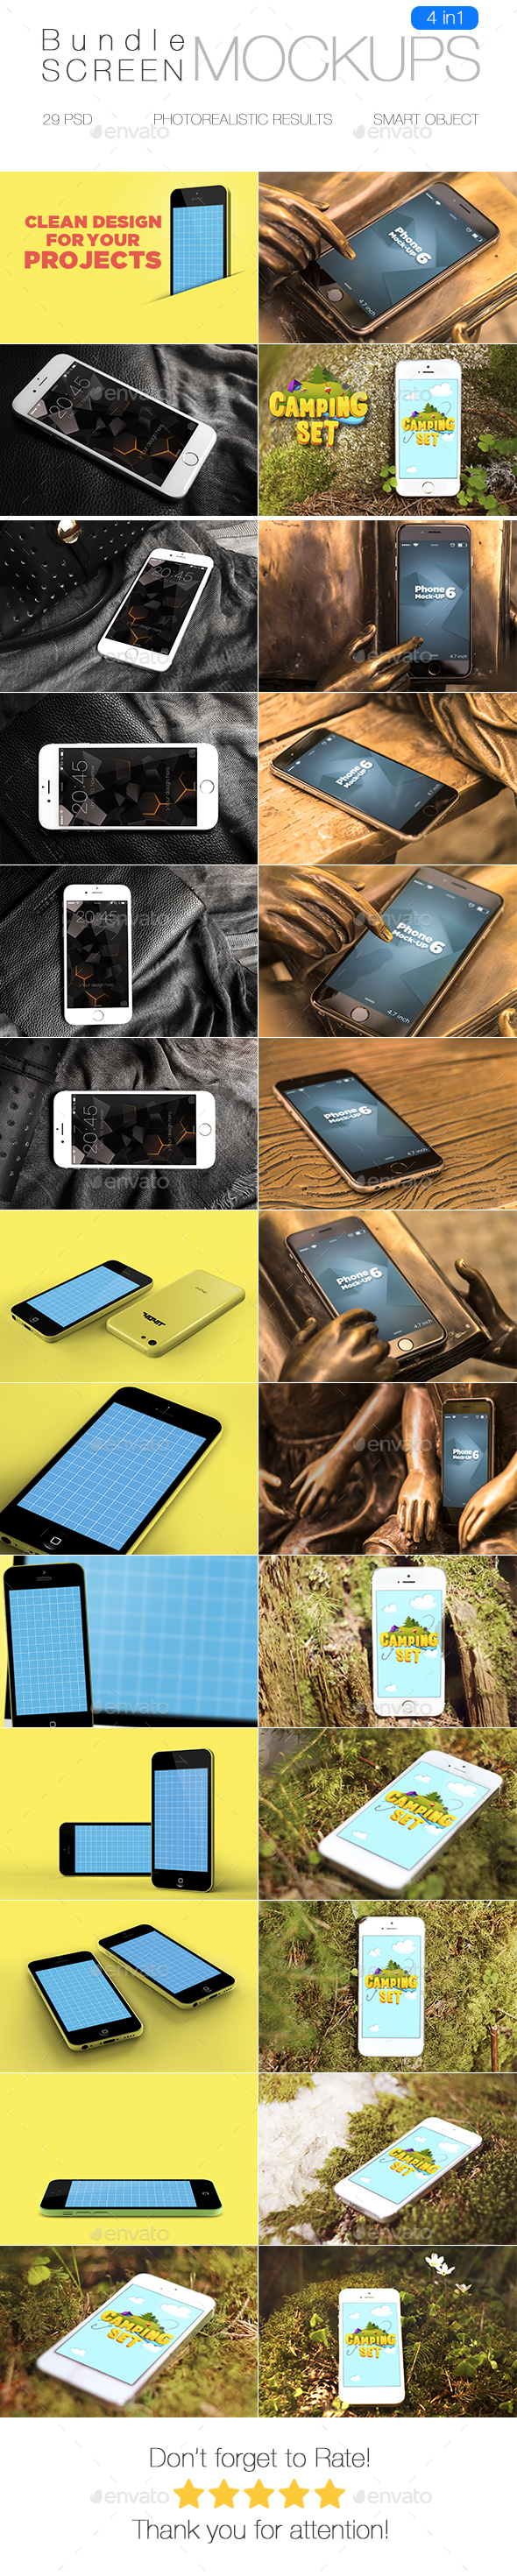 iPhone Screen Mockup Bundle - Mobile Displays